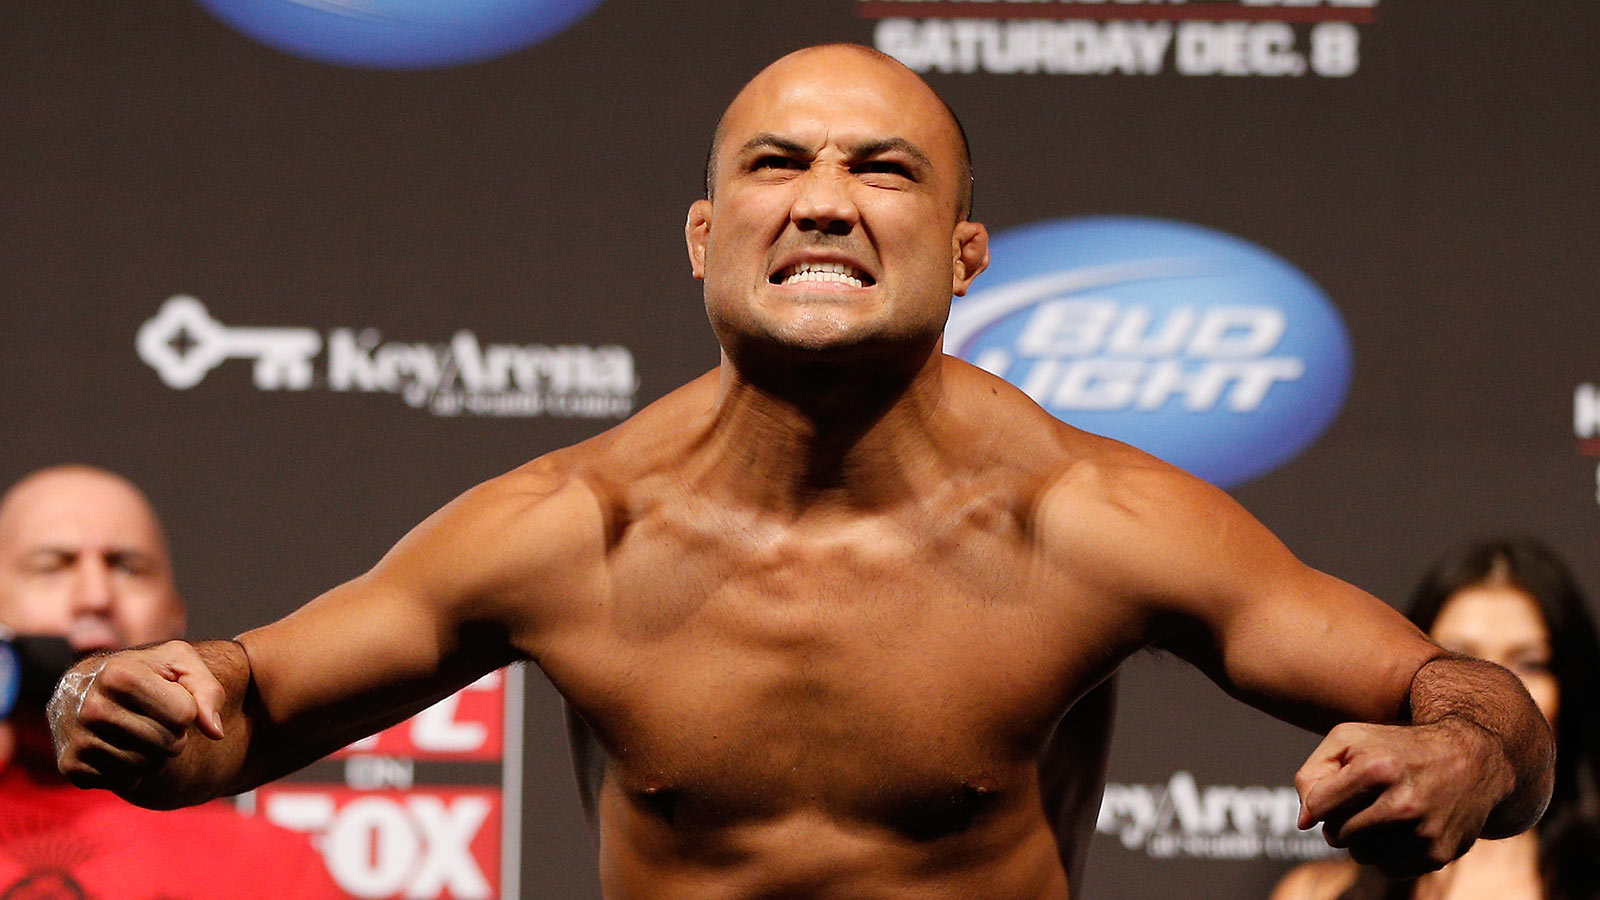 020816-UFC-BJ-Penn-weighs-in-during-the-official-UFC-on-FOX-weigh-in-PI